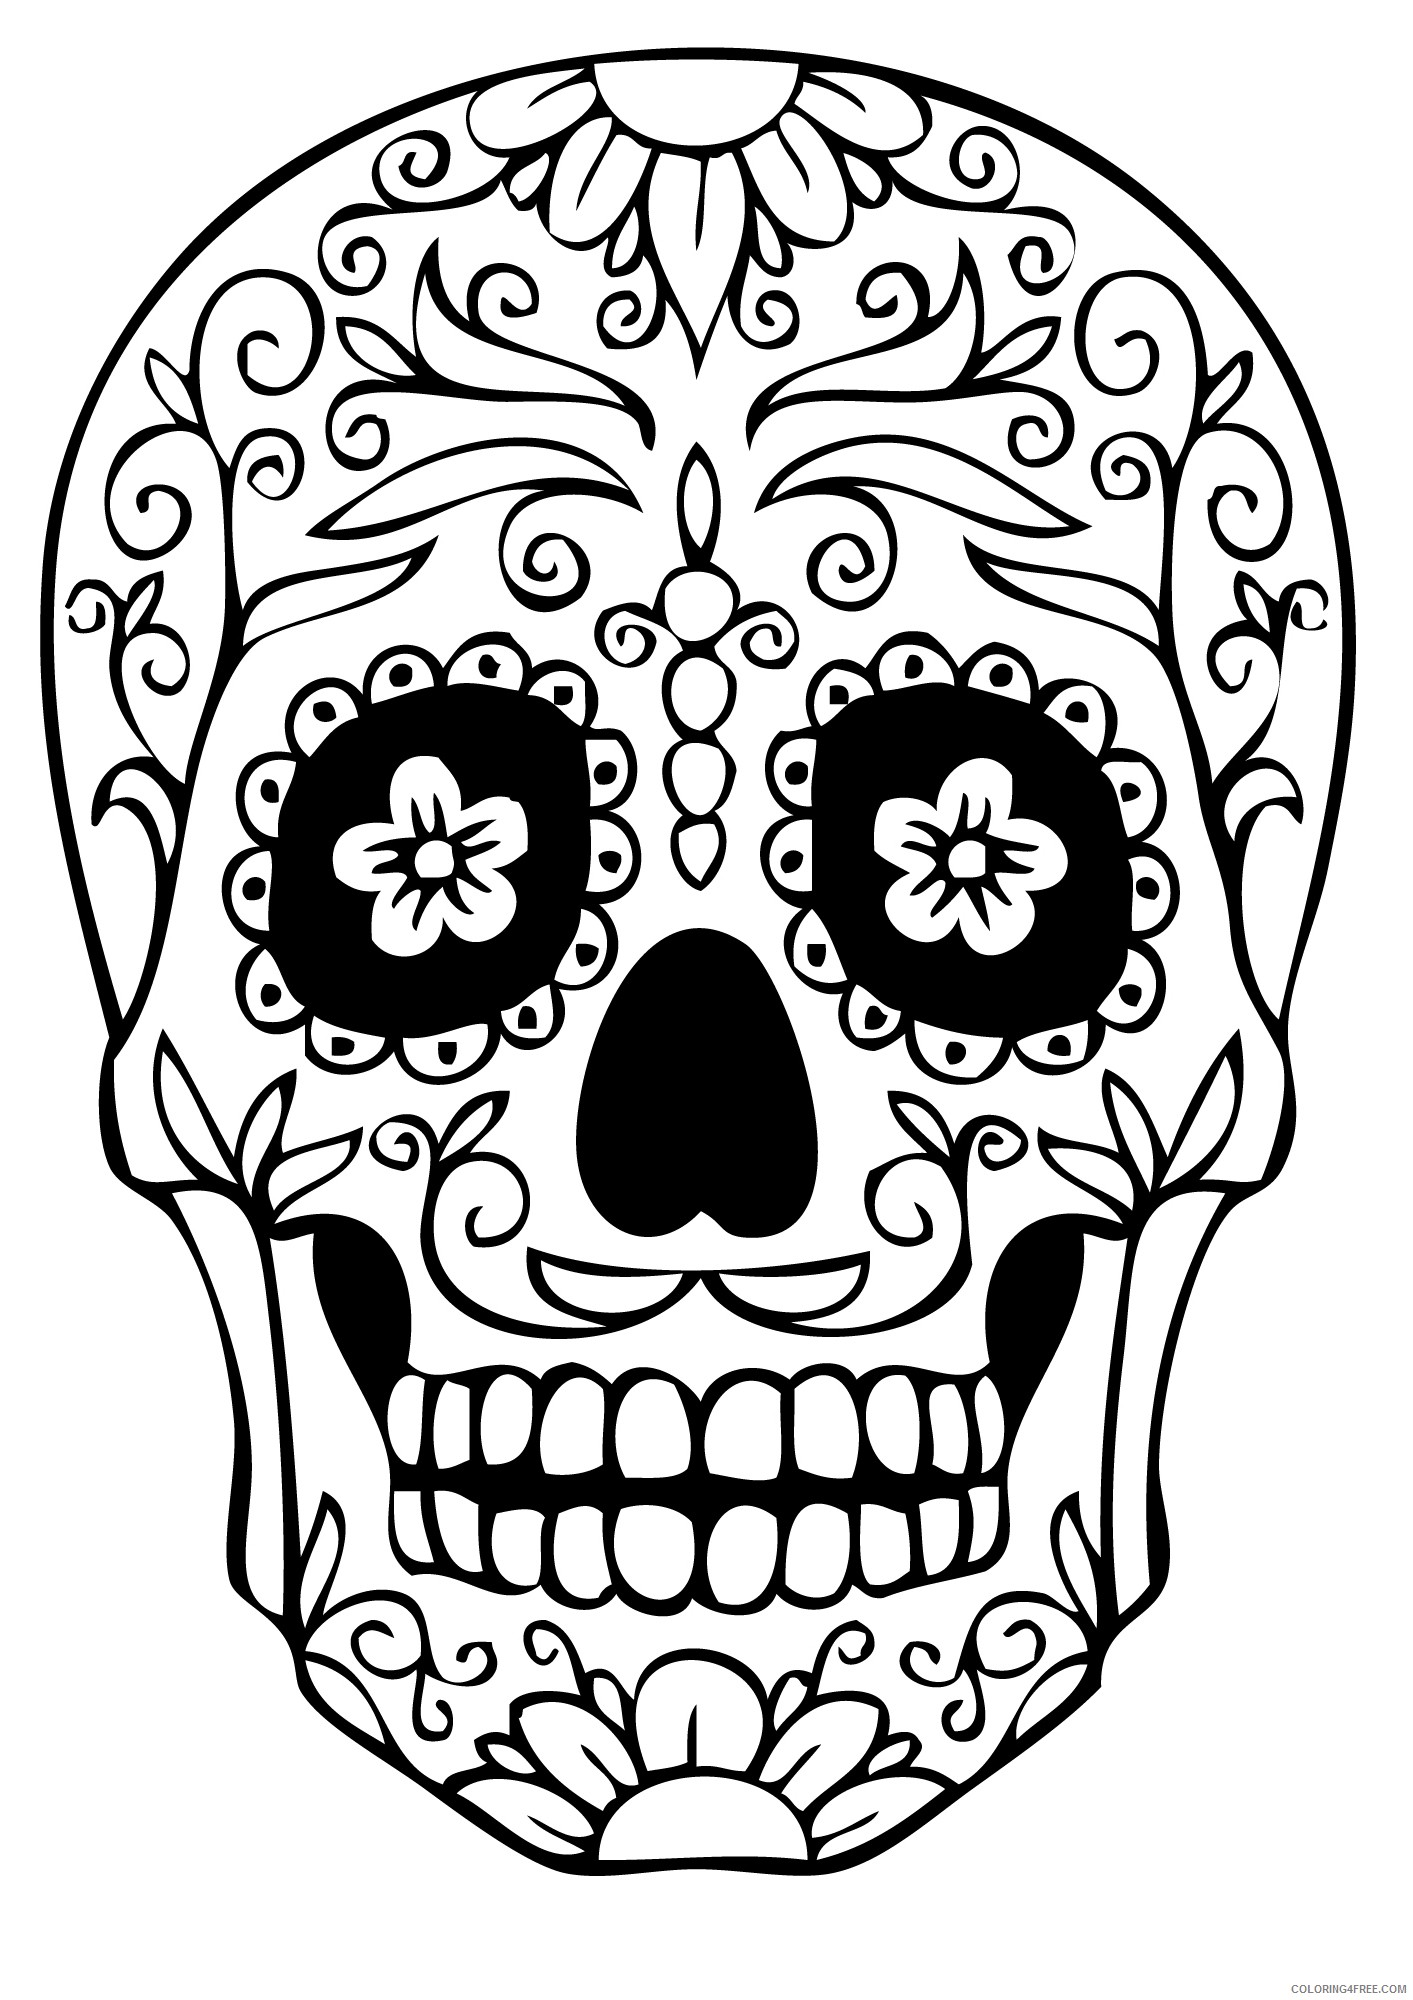 adult coloring pages sugarskull Coloring4free